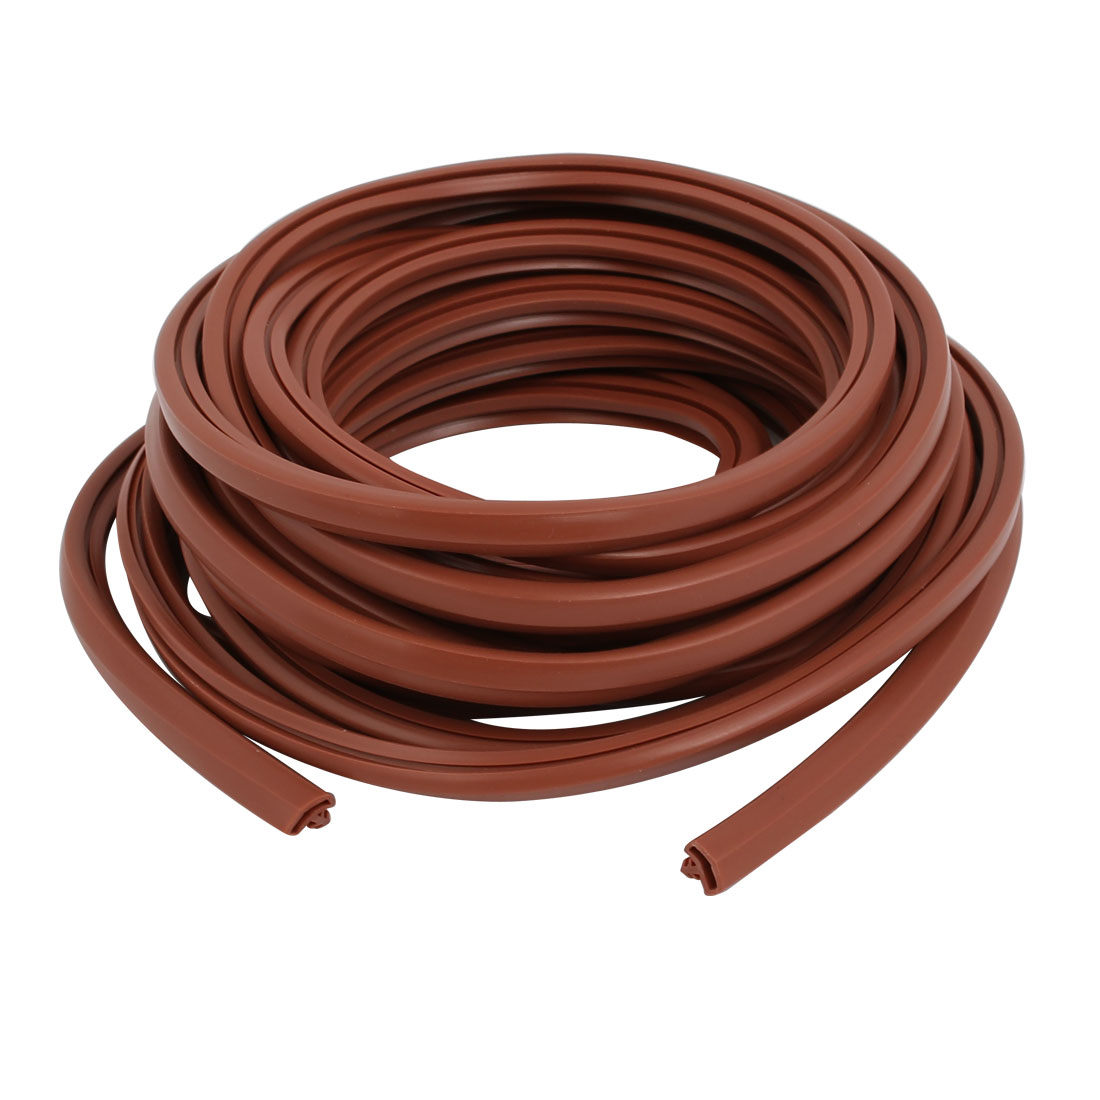 Unique Bargains 5Meter 5x8mm Rubber Roof Shape Door Frame Groove Weather Stripping Red Brown